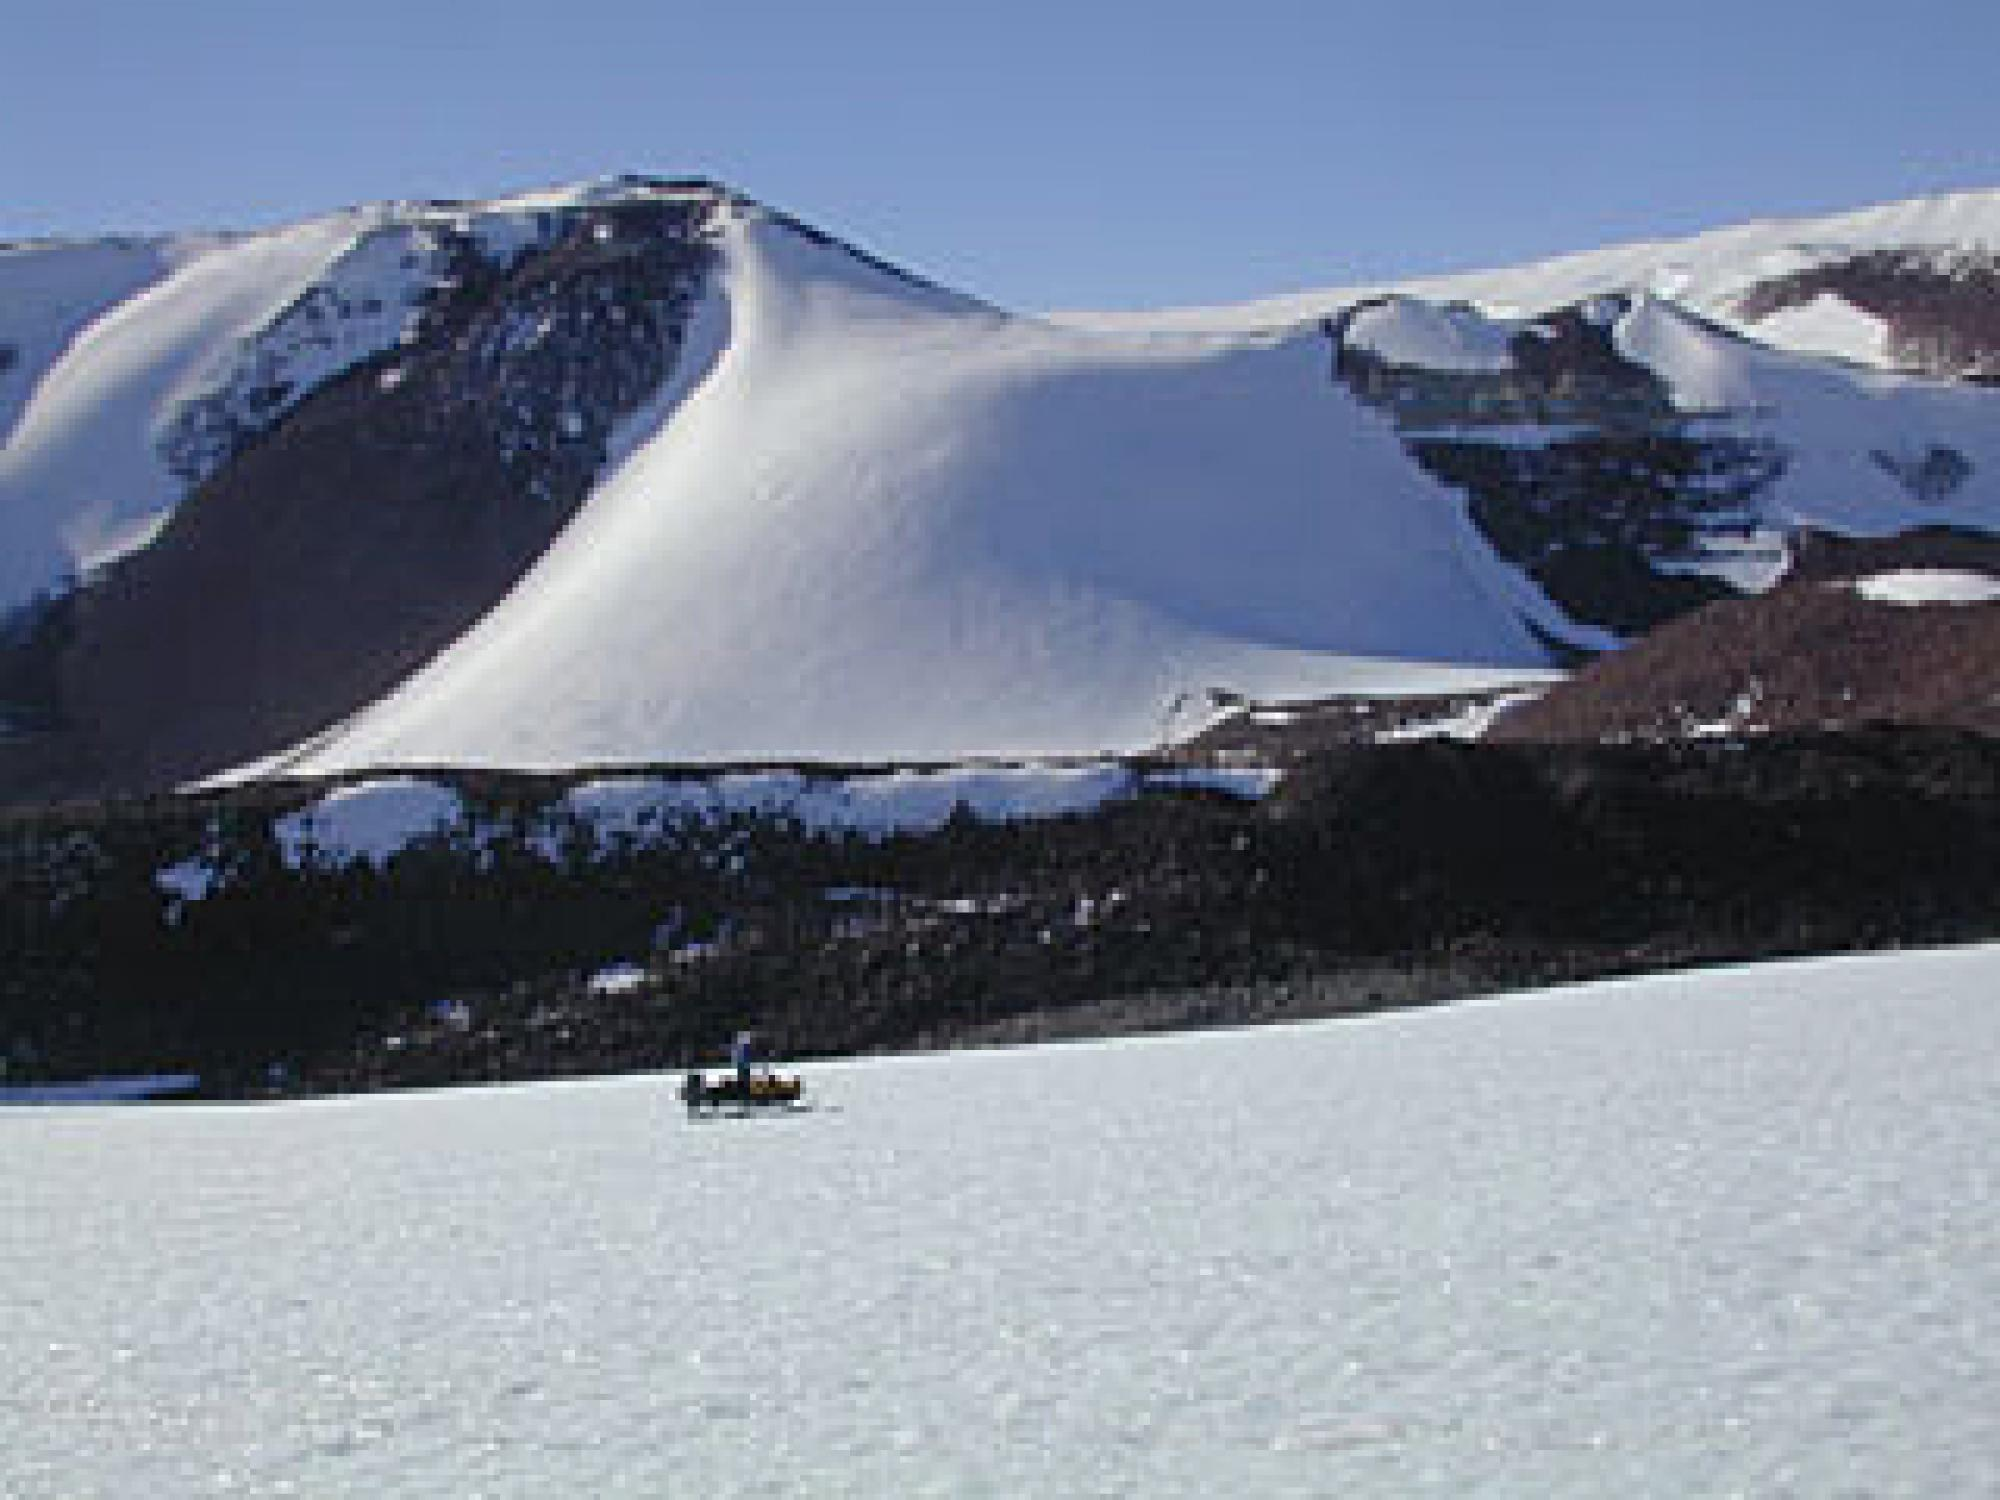 Cruising the base of an Antarctic mountain range, searching for meteorites, on an austral summer day.